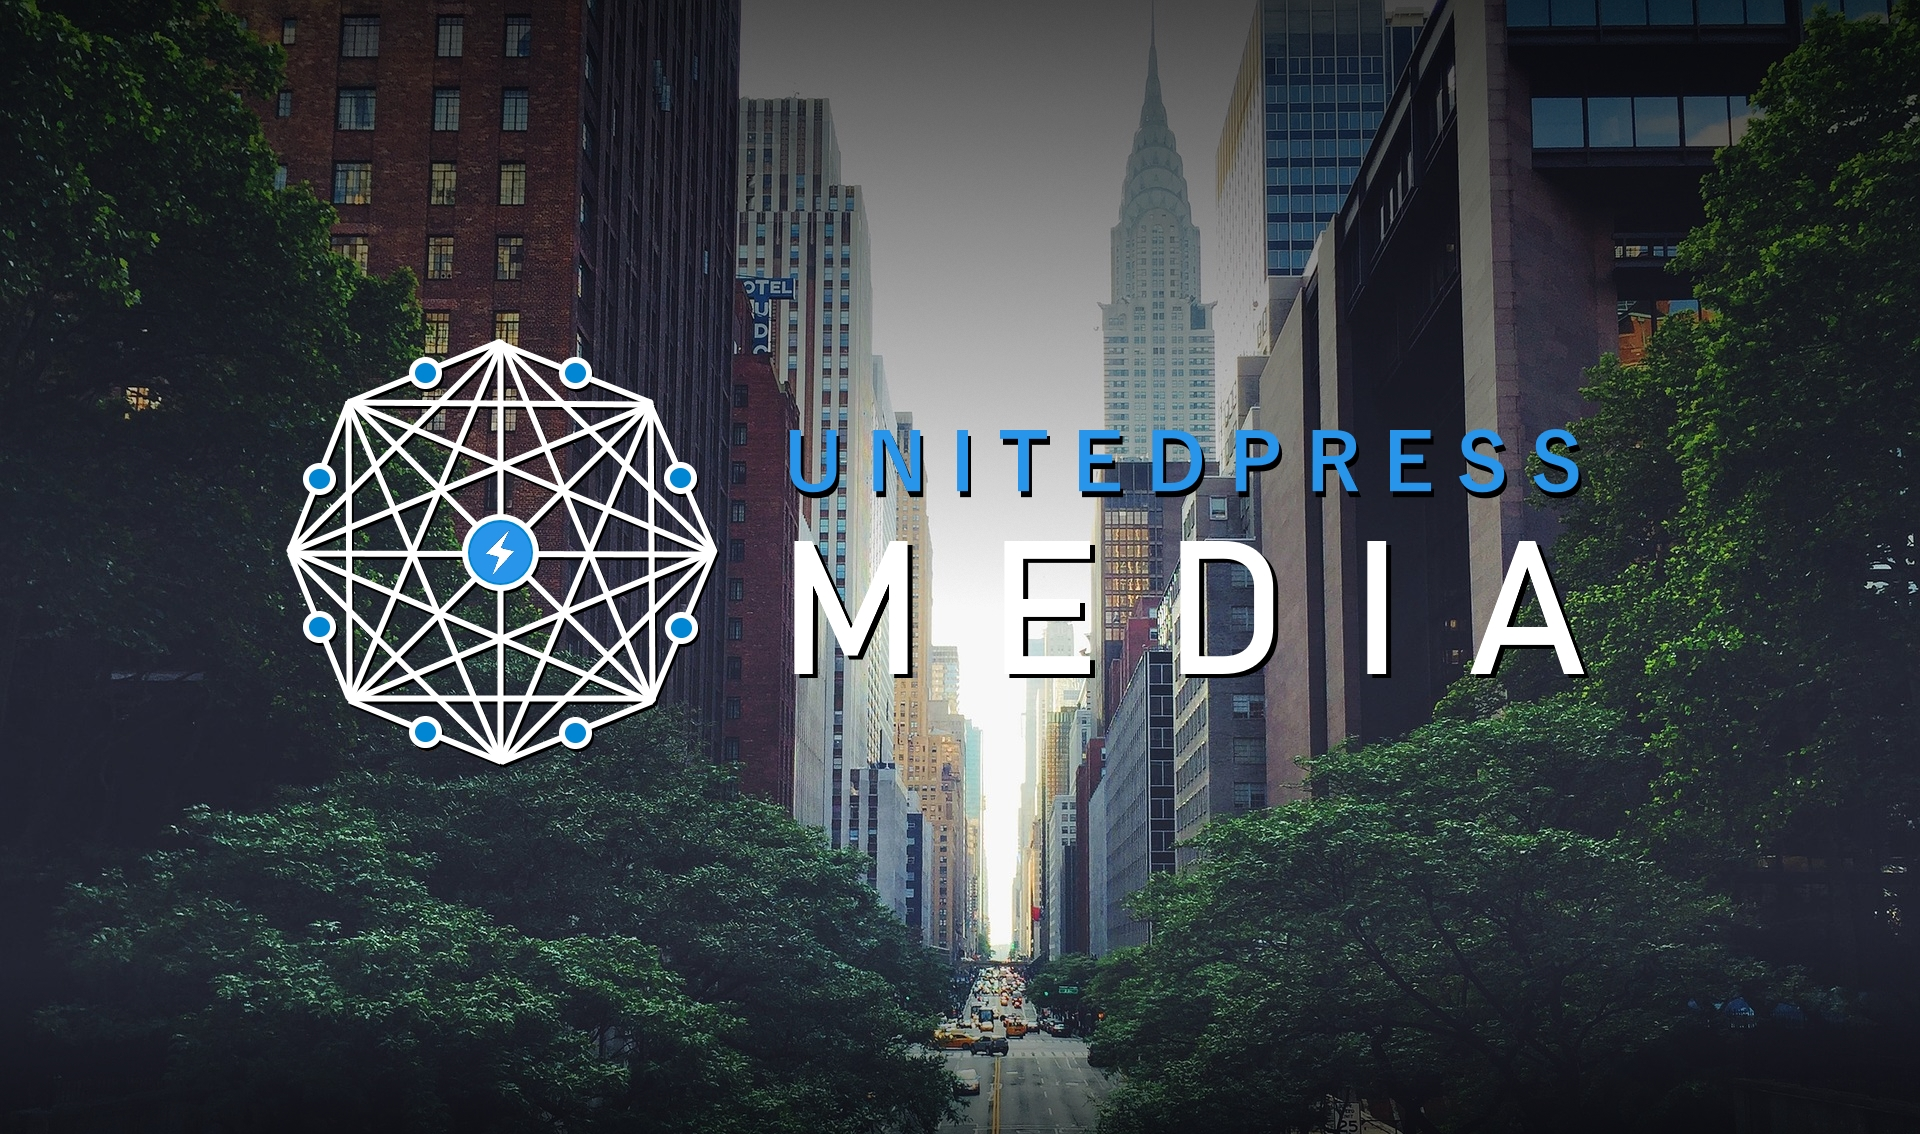 Influencer Marketing Agency NYC - United Press Media